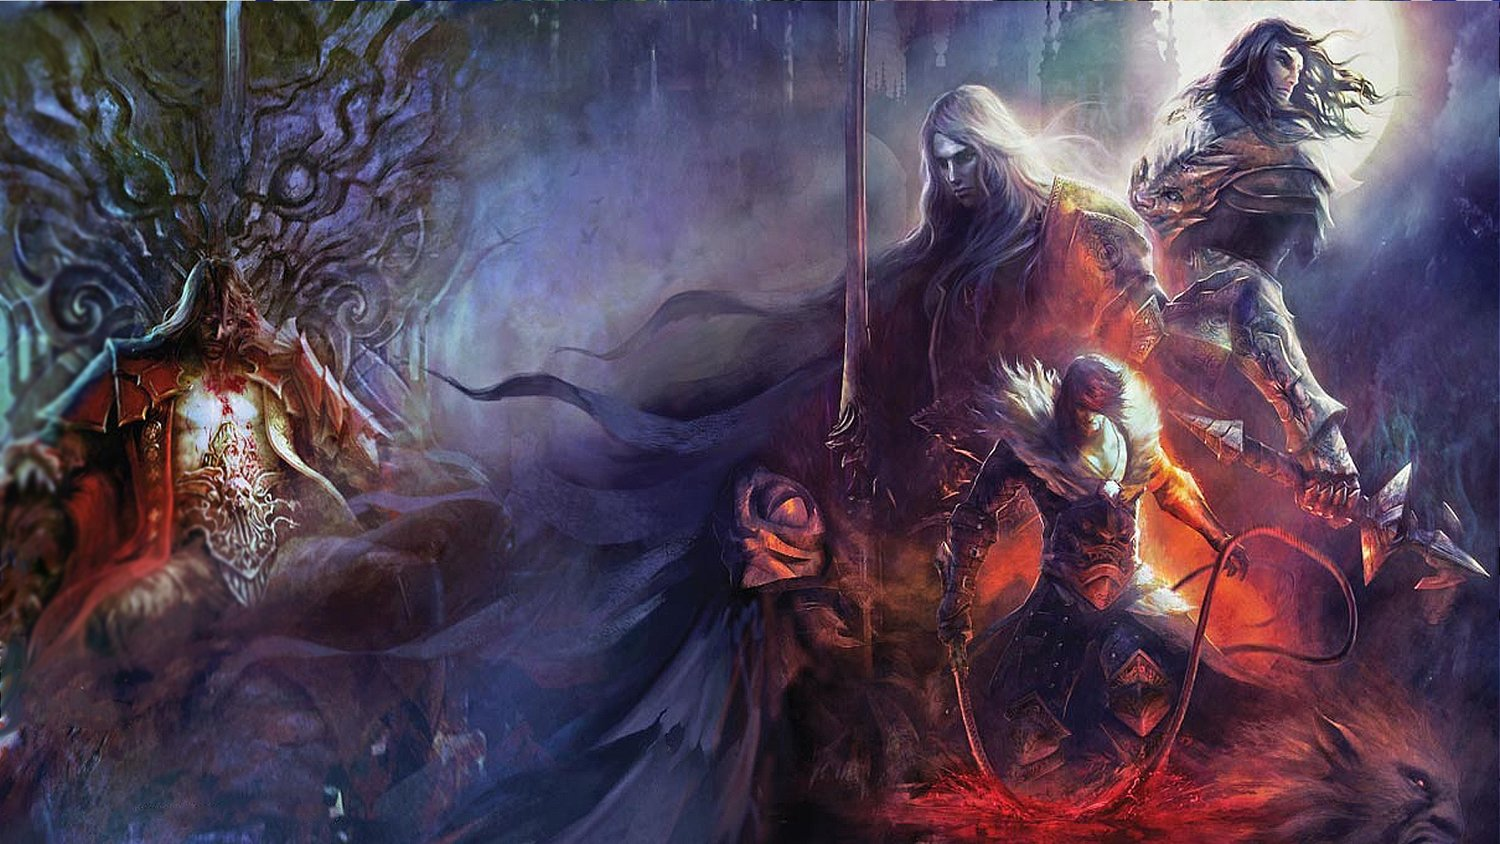 Details Revealed for Netflix's CASTLEVANIA Animated Series; It Will Have a GAME OF THRONES Vibe